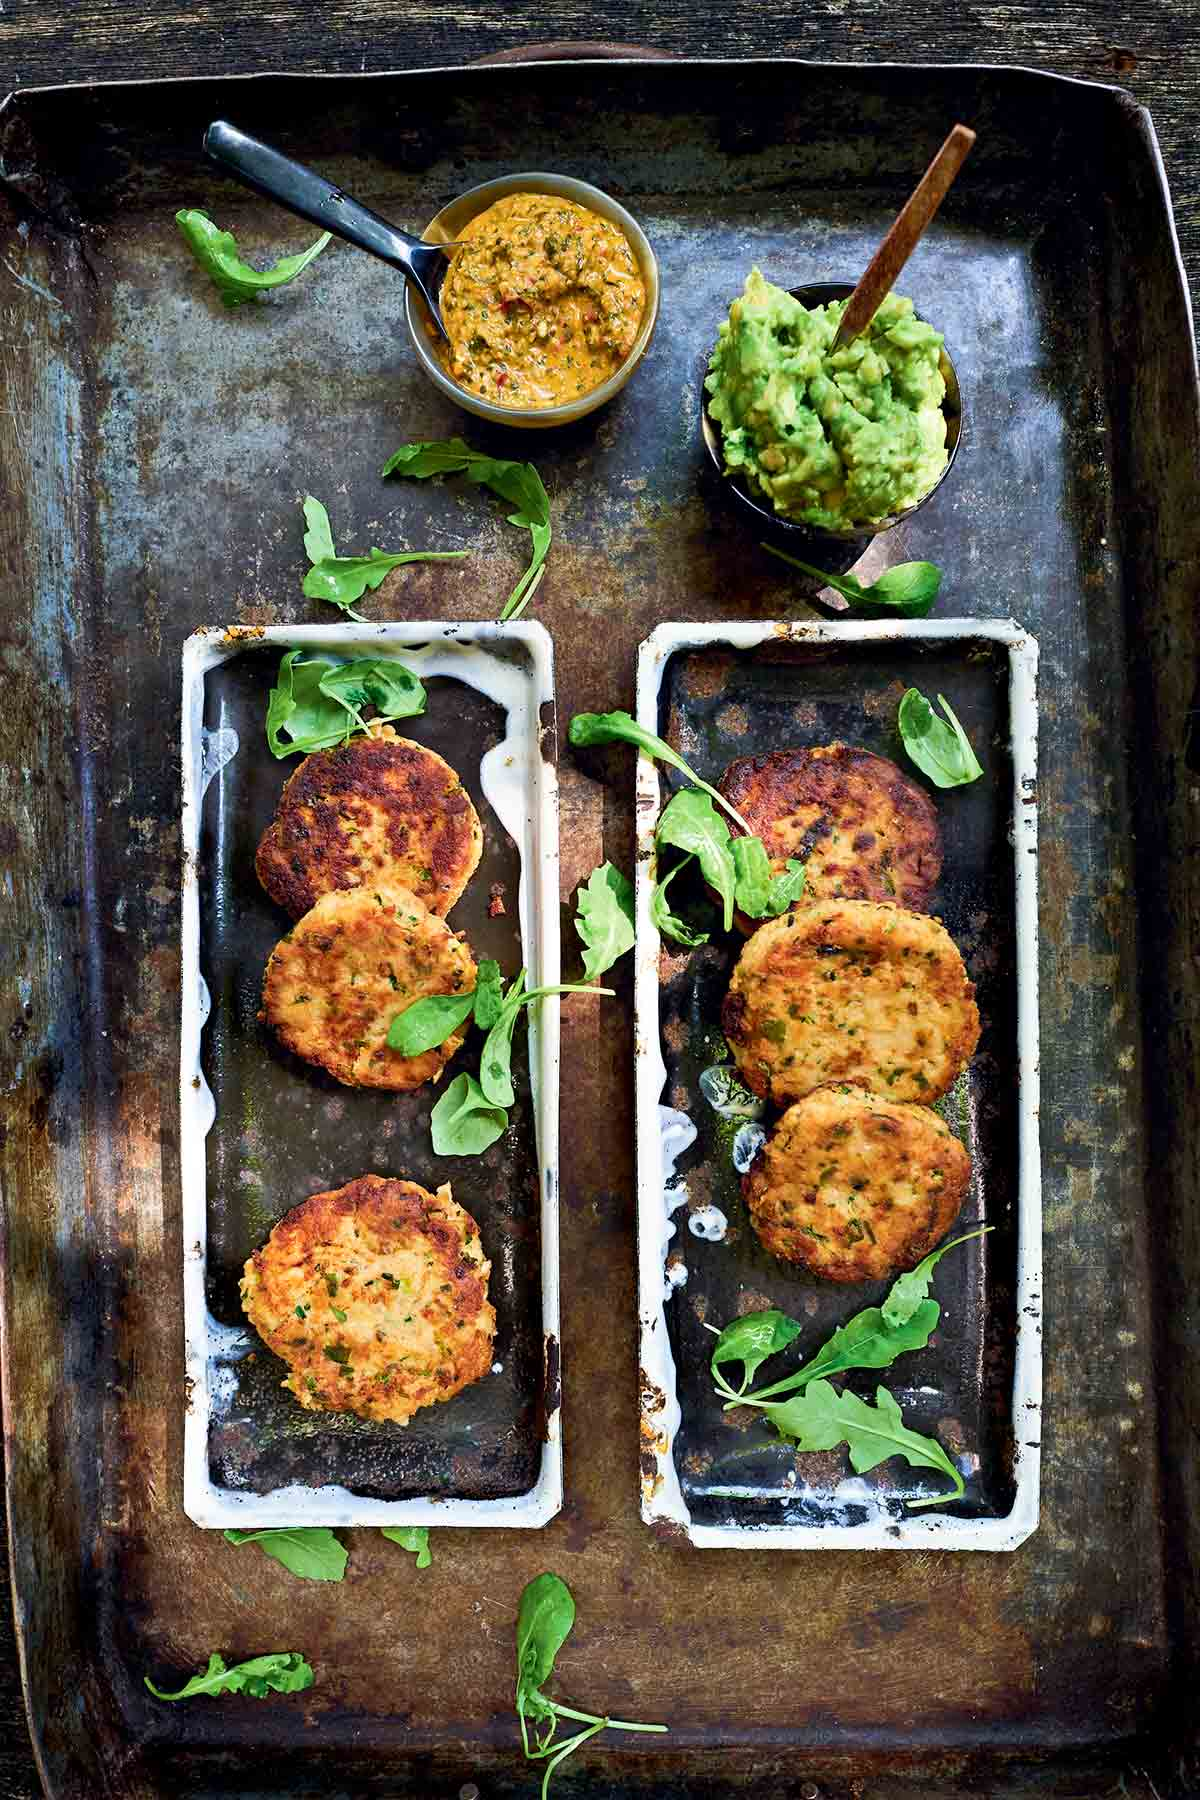 Six salmon cakes on rectangular platters with bowls of avocado spread and chimichurri beside.